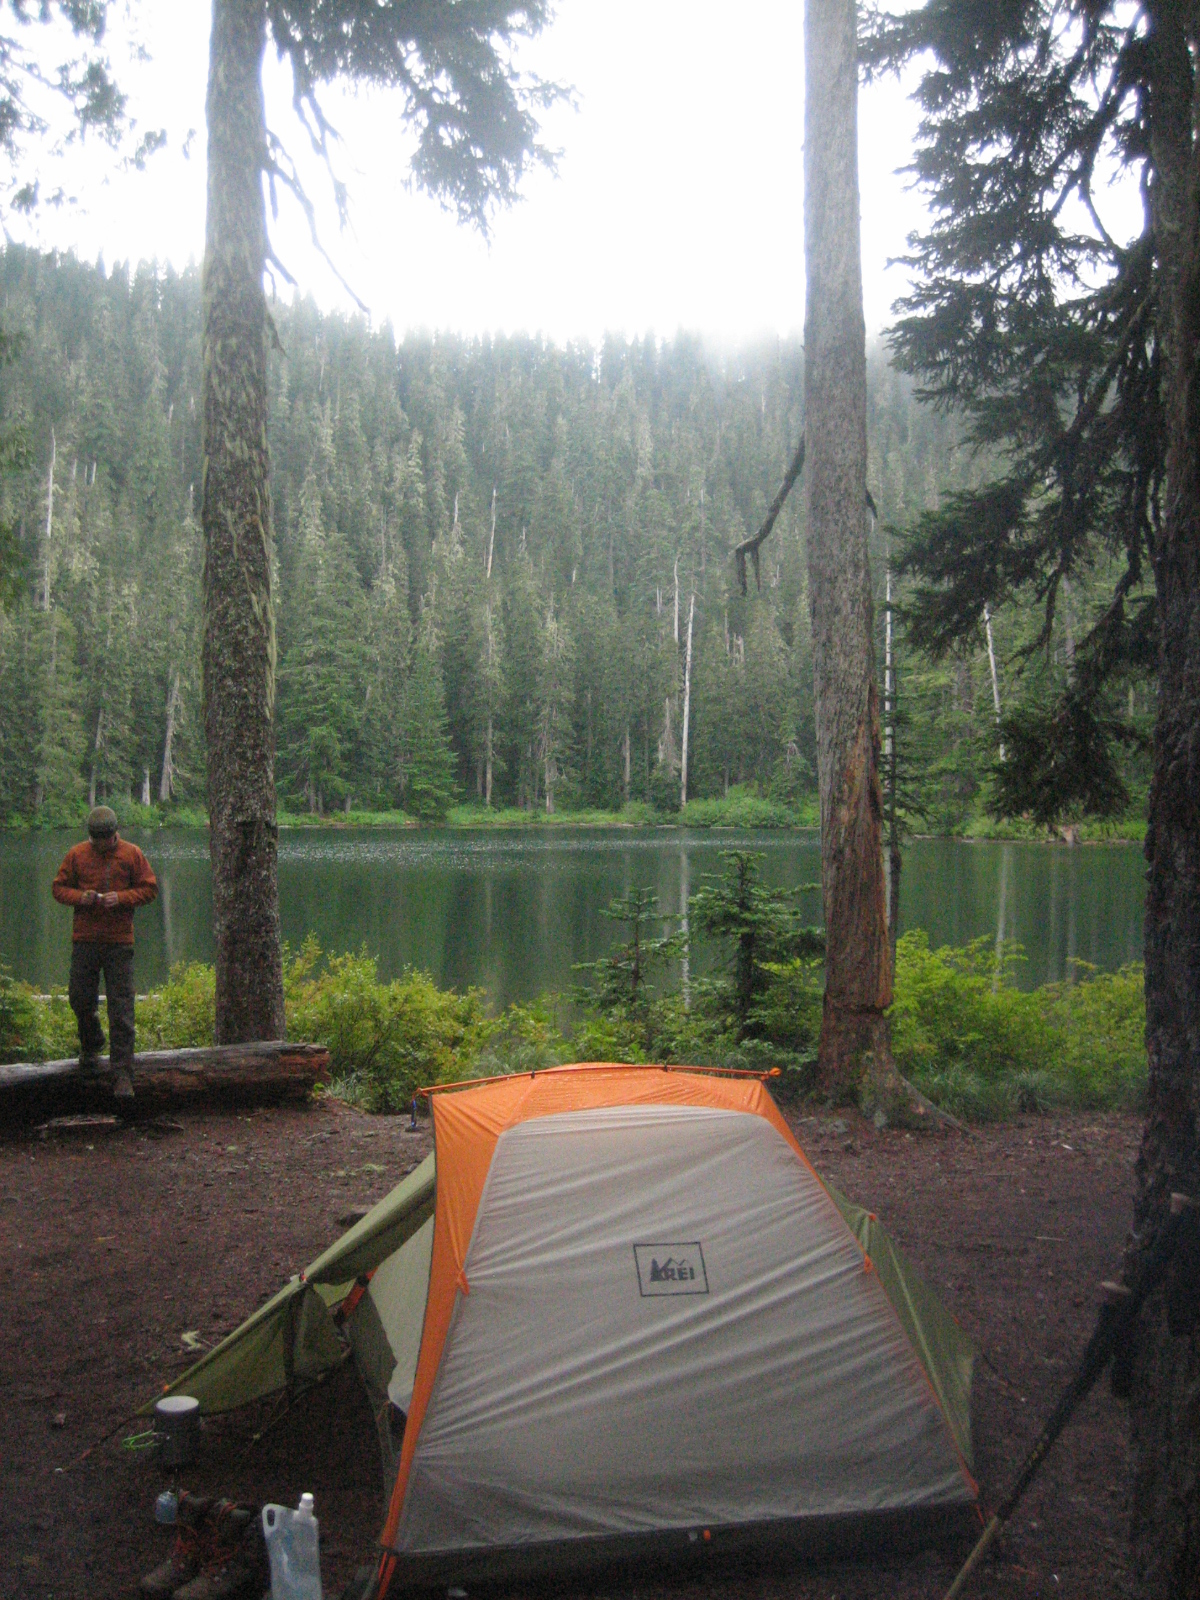 Tags Picture of Product & Brads Boring Blog: My Review of REI Cirque ASL 2 Tent